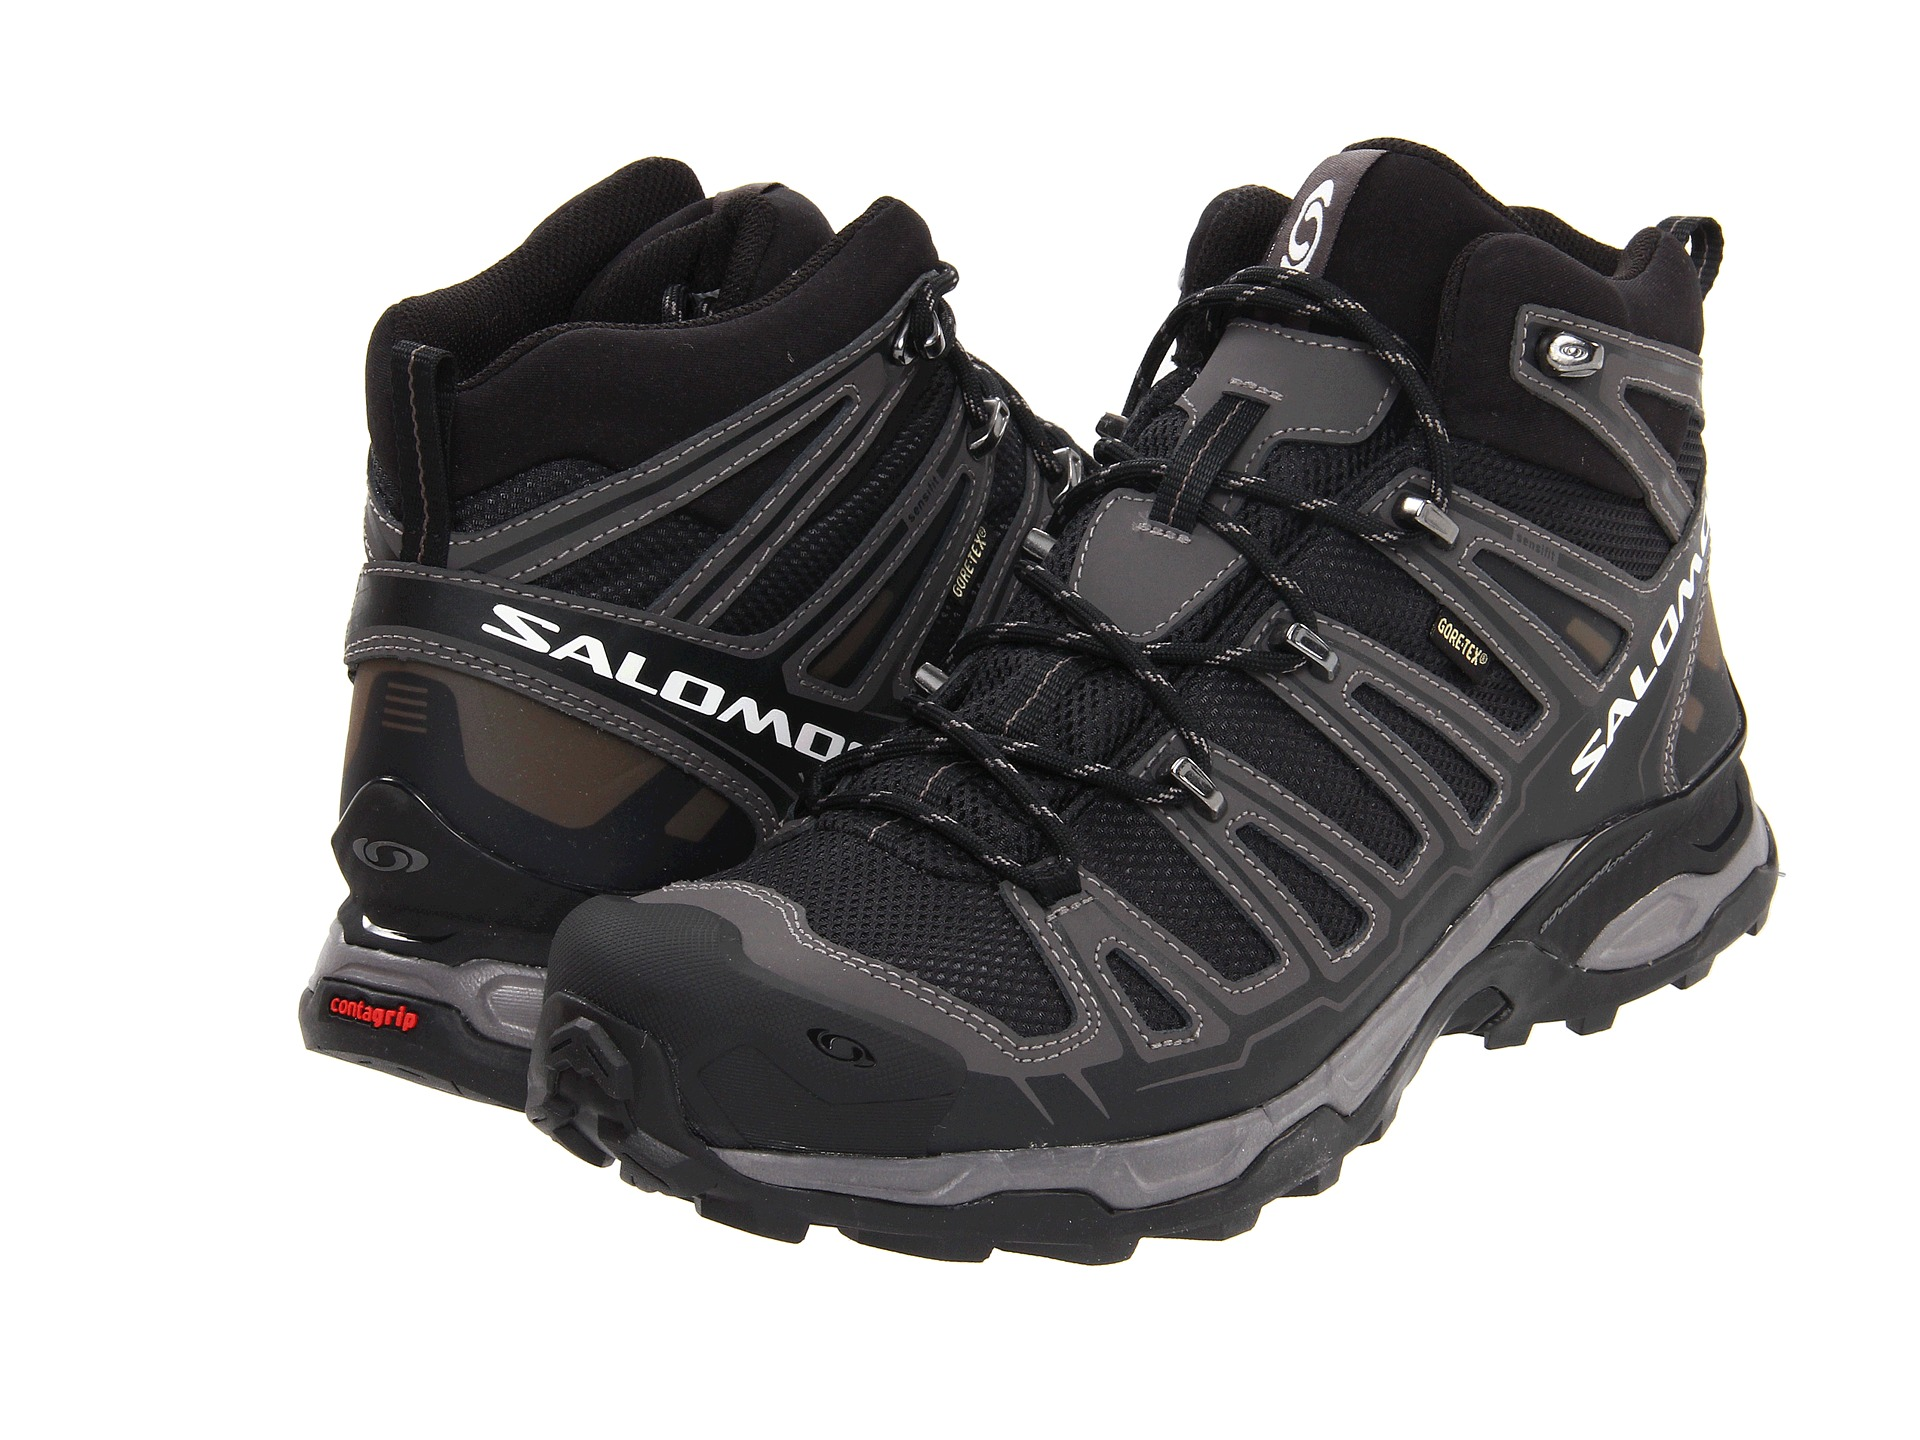 Ботинки мужские   Salomon Ultra Mid GORE-TEX?  salomon salomon x ultra mid 2 gtx женские